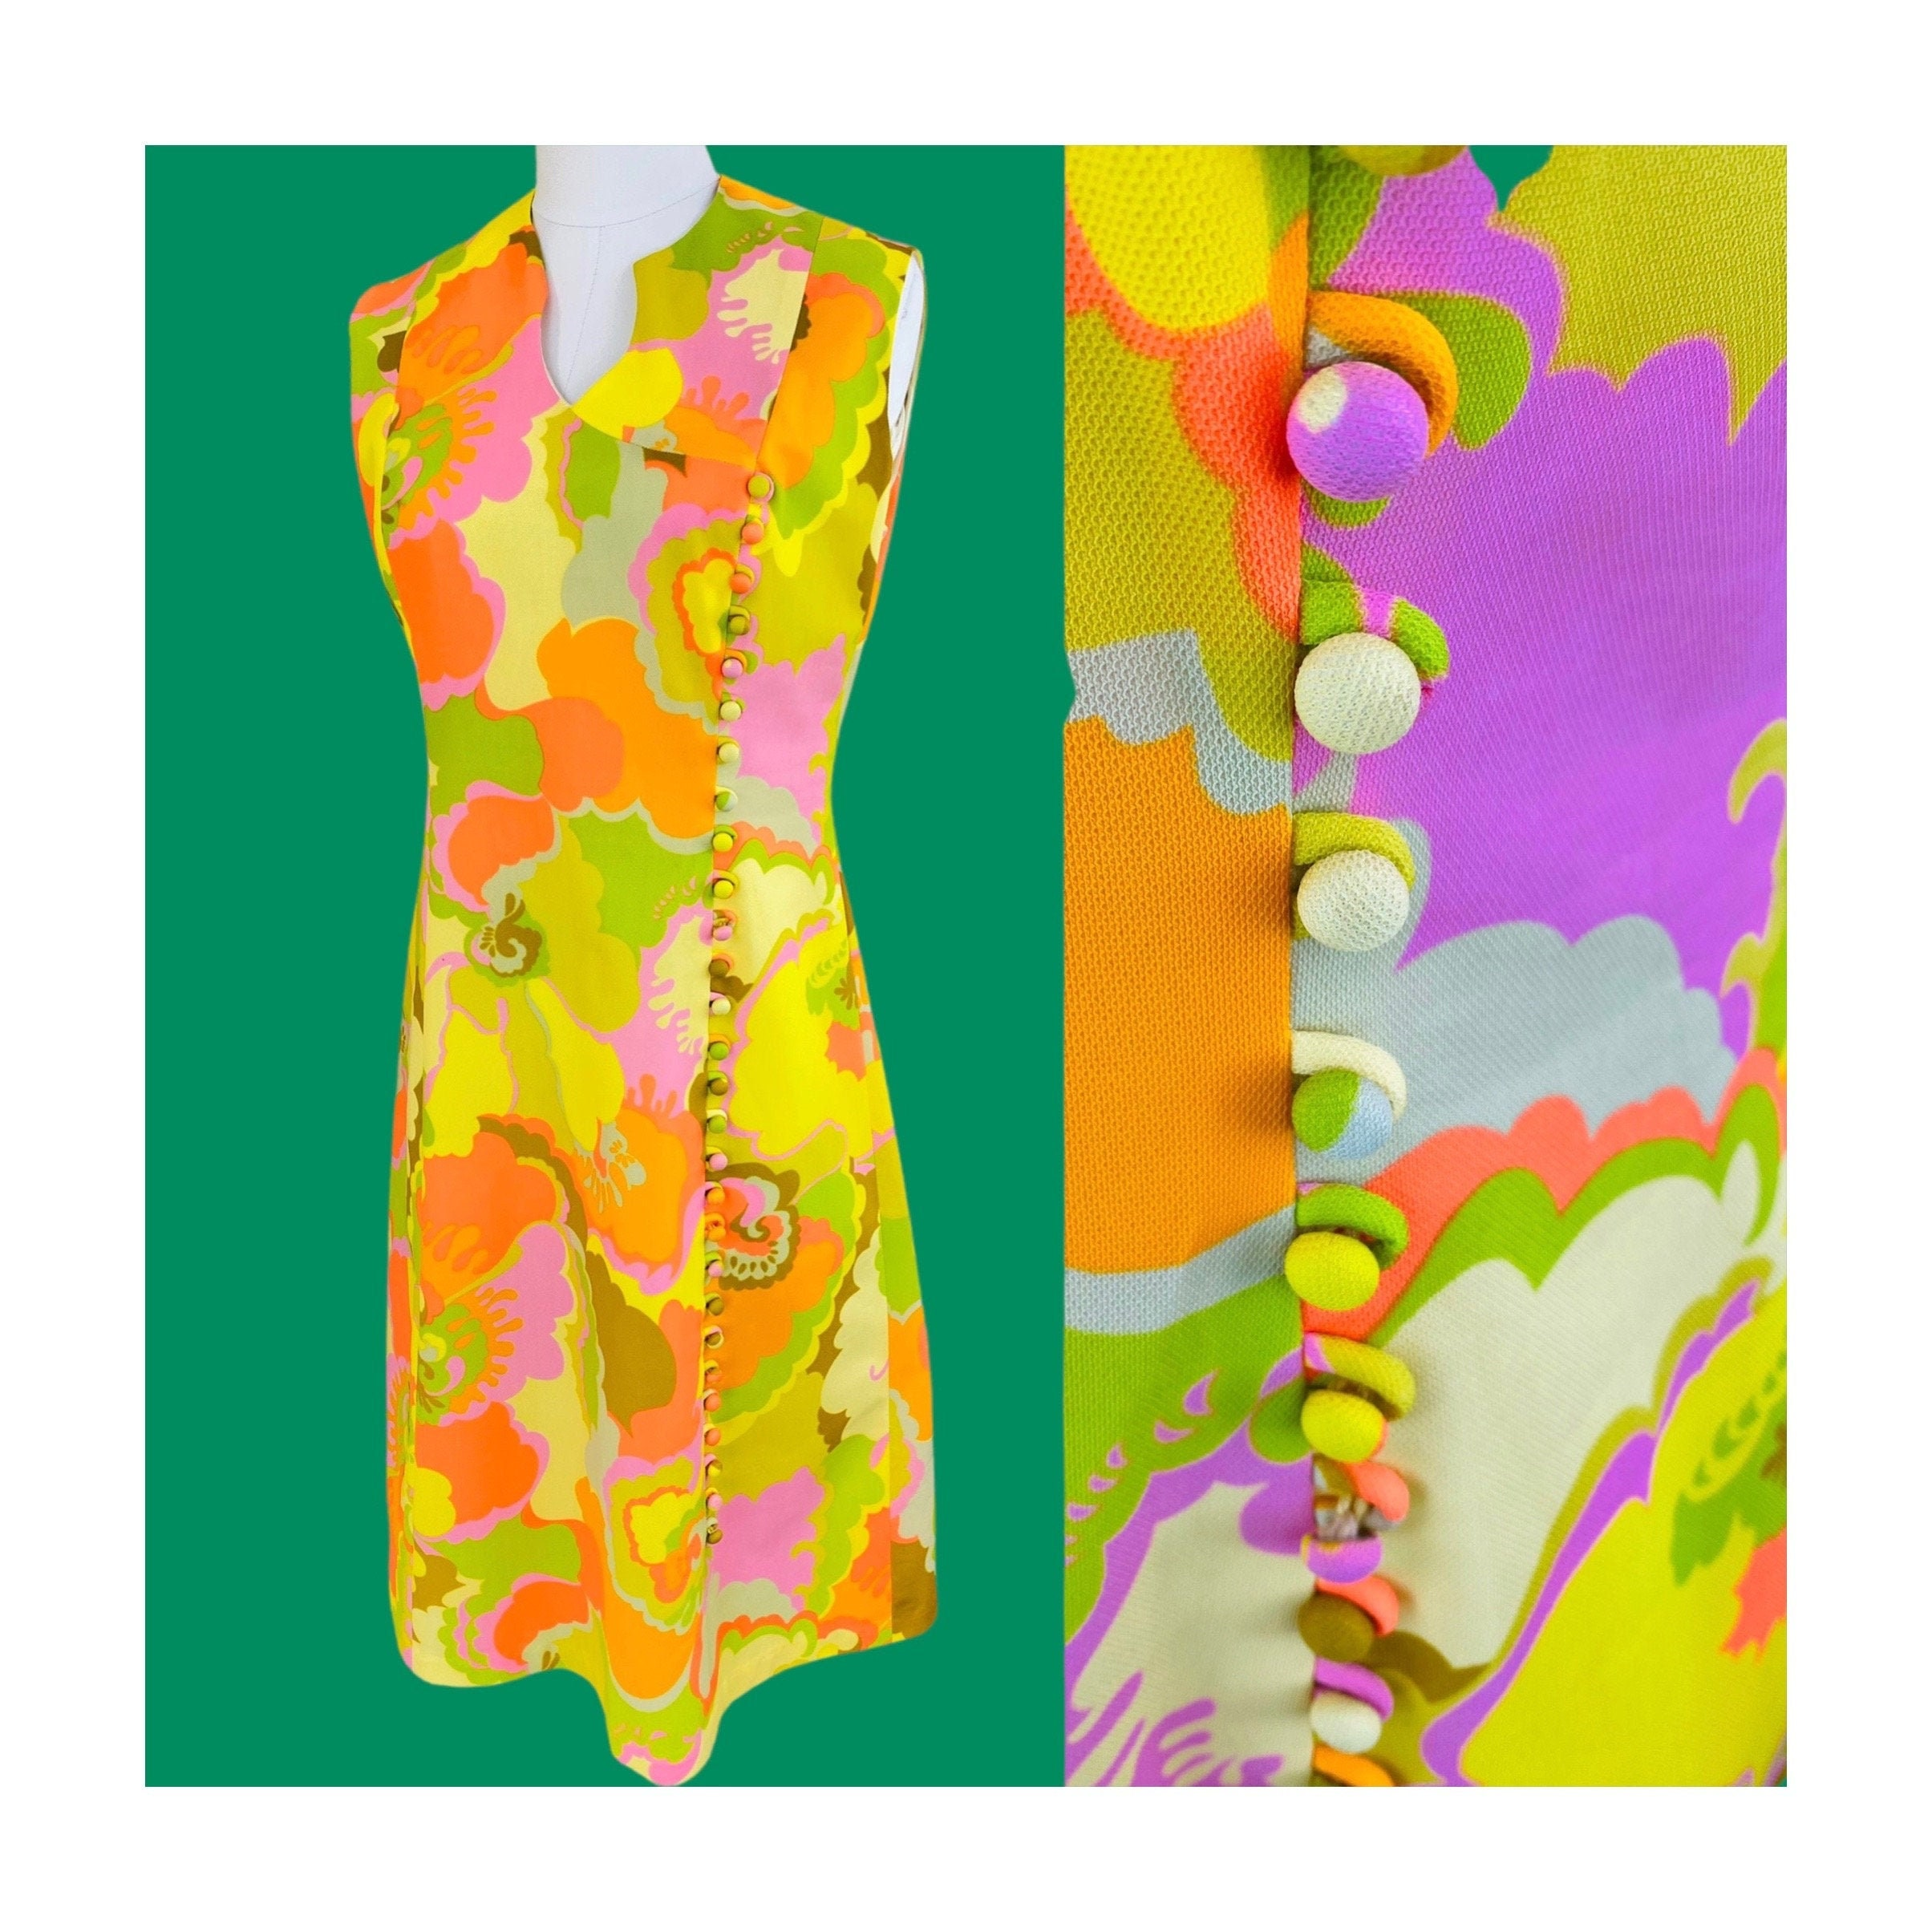 80s Dresses   Casual to Party Dresses Rare 1960S Neon Psychedelic Sleeveless Flower Power Dress, 60S Button Embellished Carnaby Street Mod Floral Shift  Medium Gregg Draddy $0.00 AT vintagedancer.com